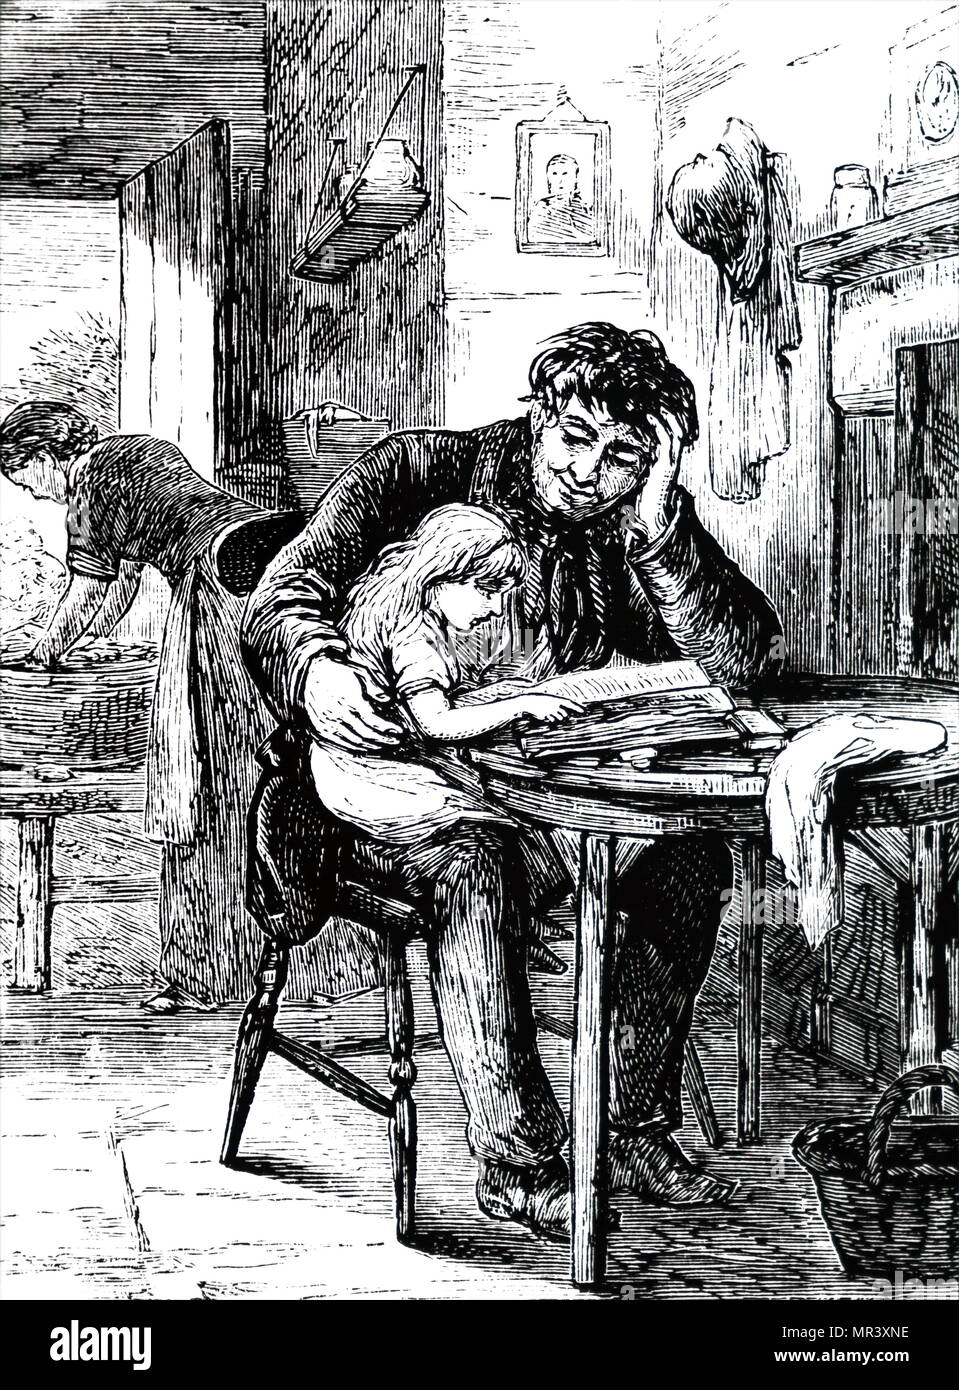 Illustration depicting a father teaching his daughter to read from the family Bible, which was probably the only book in the house. Dated 19th century - Stock Image